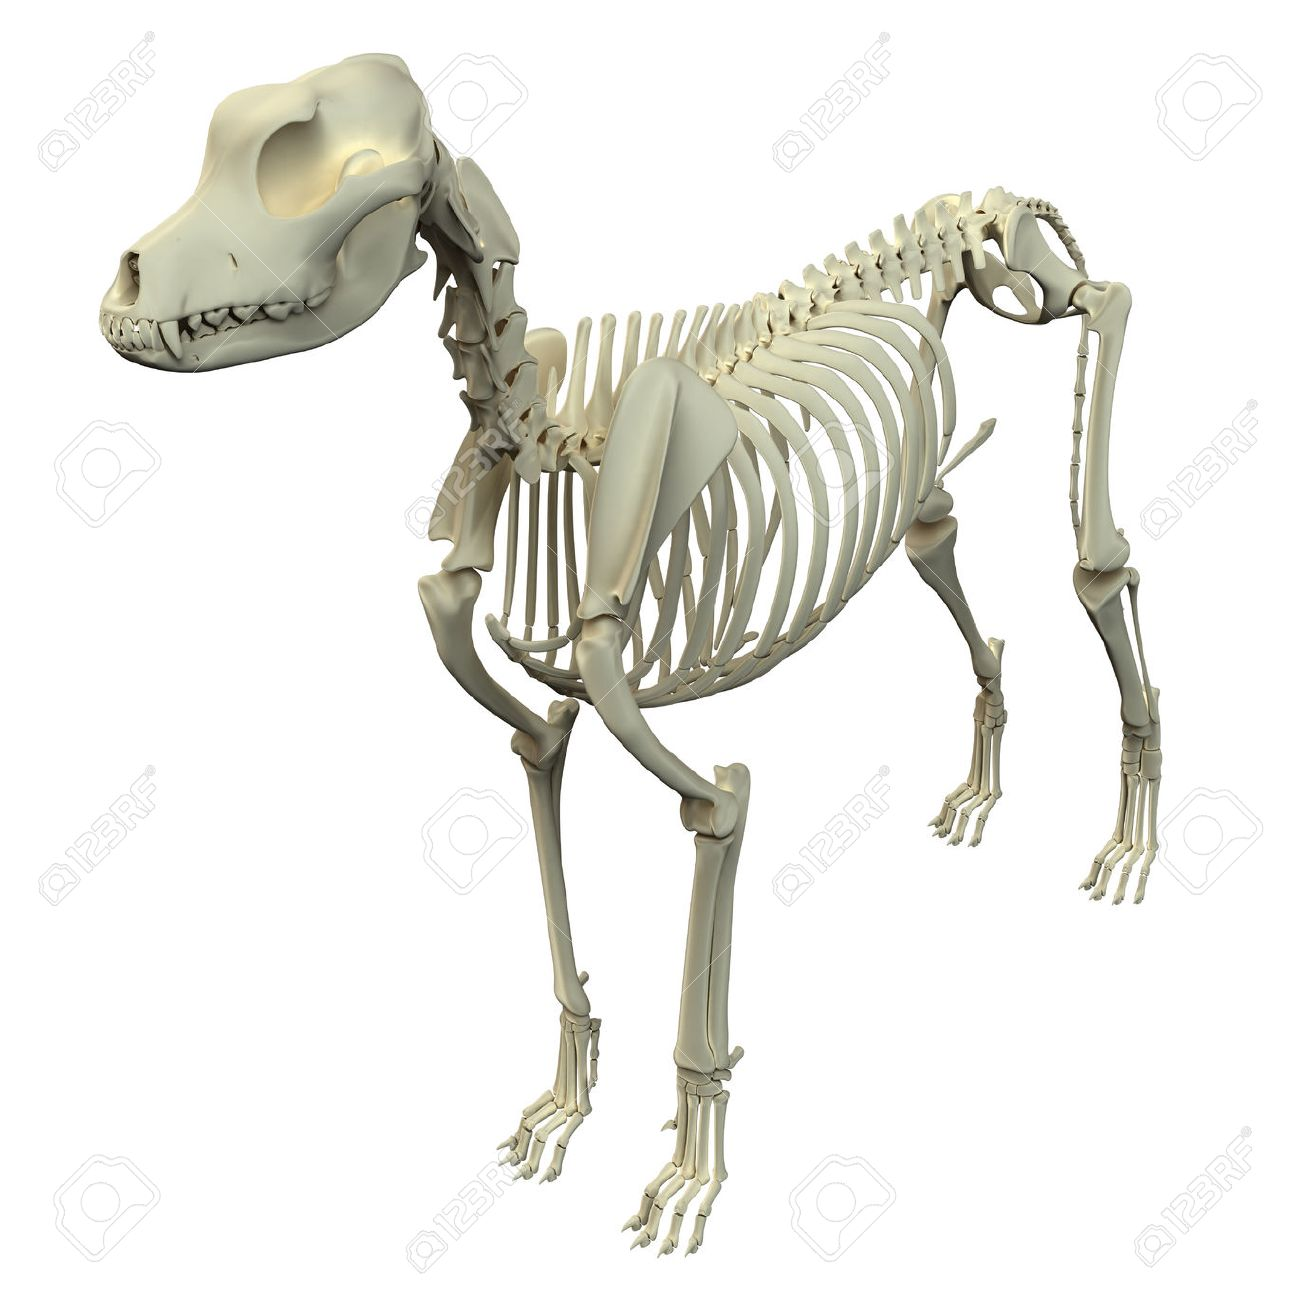 Dog Skeleton Anatomy Stock Photo, Picture And Royalty Free Image ...